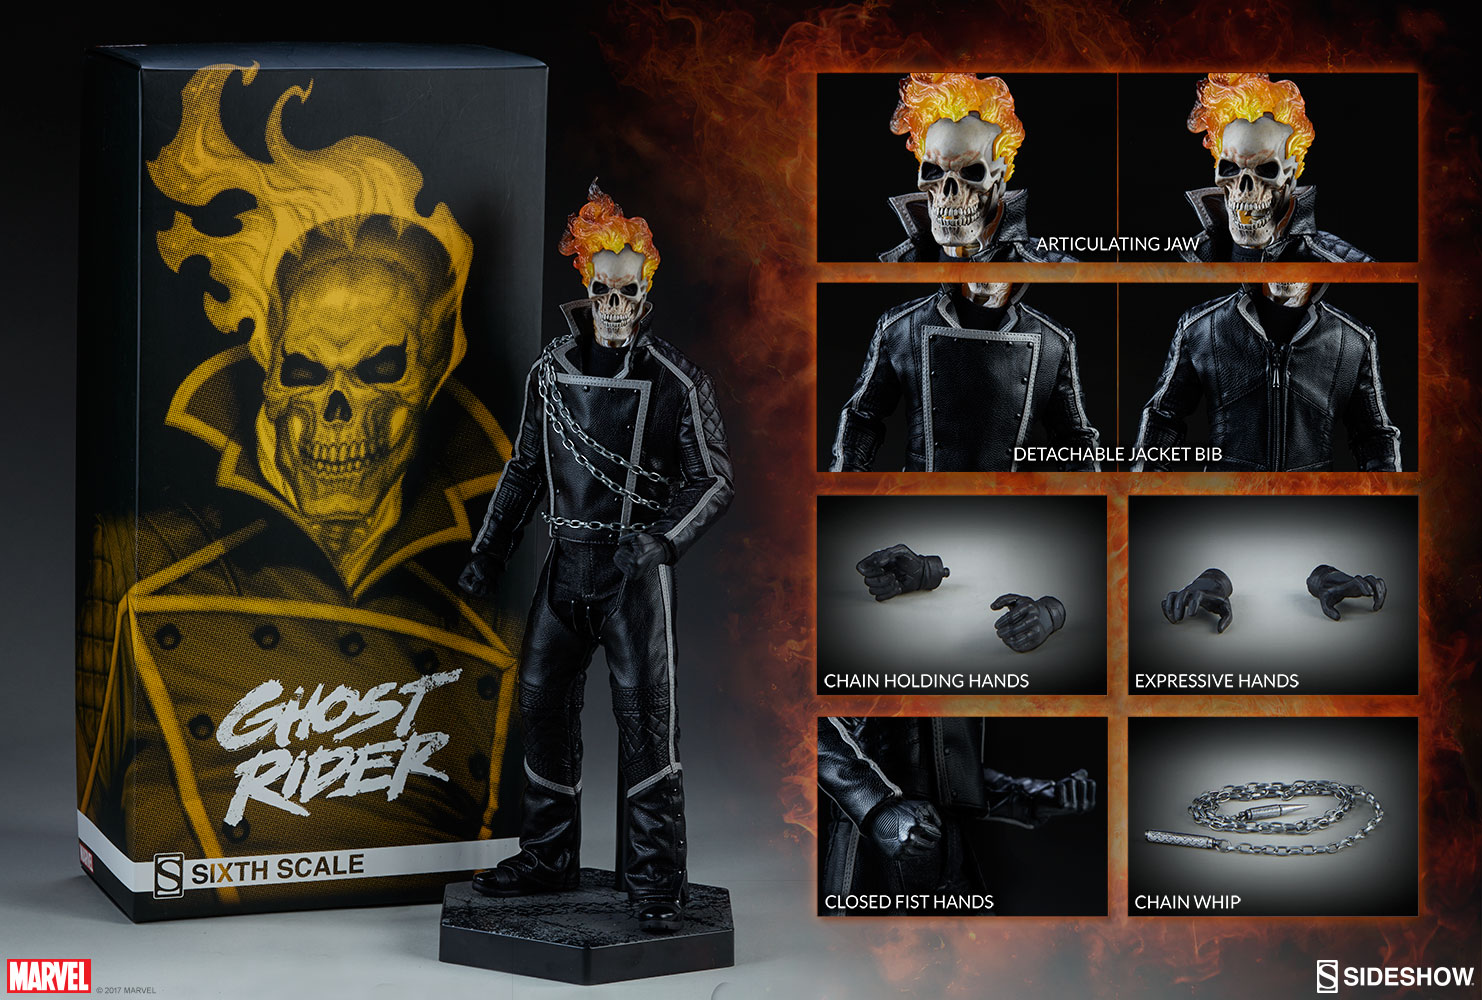 marvel ghost rider sixth scale figuresideshow collectibl